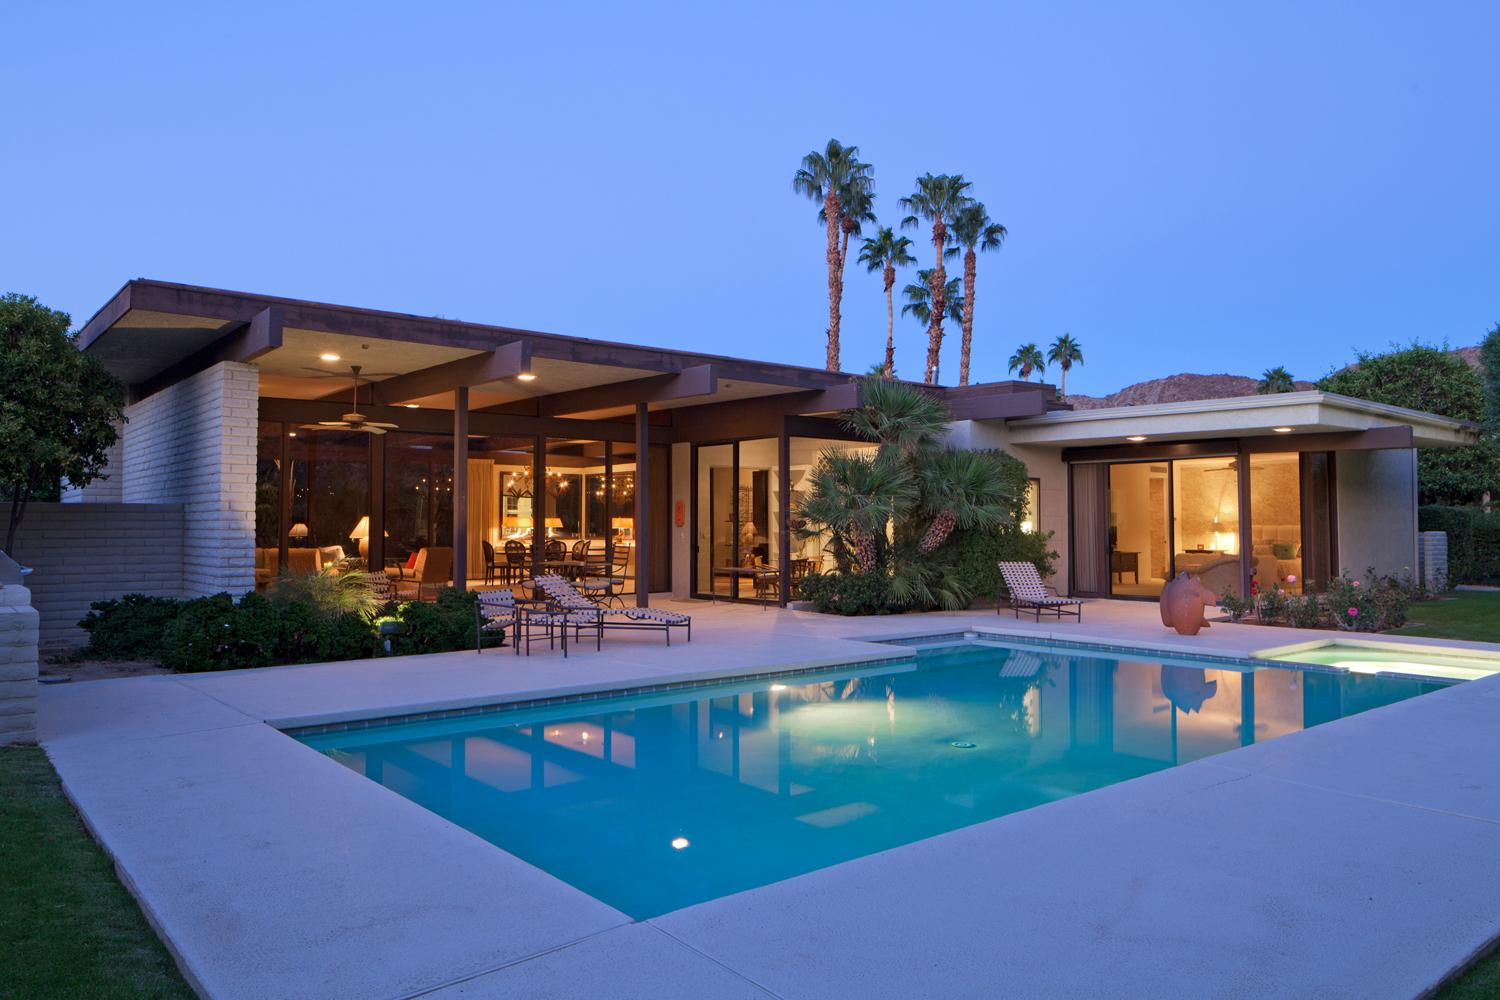 The Movie Colony East Homes For Sale Palm Springs Ruth